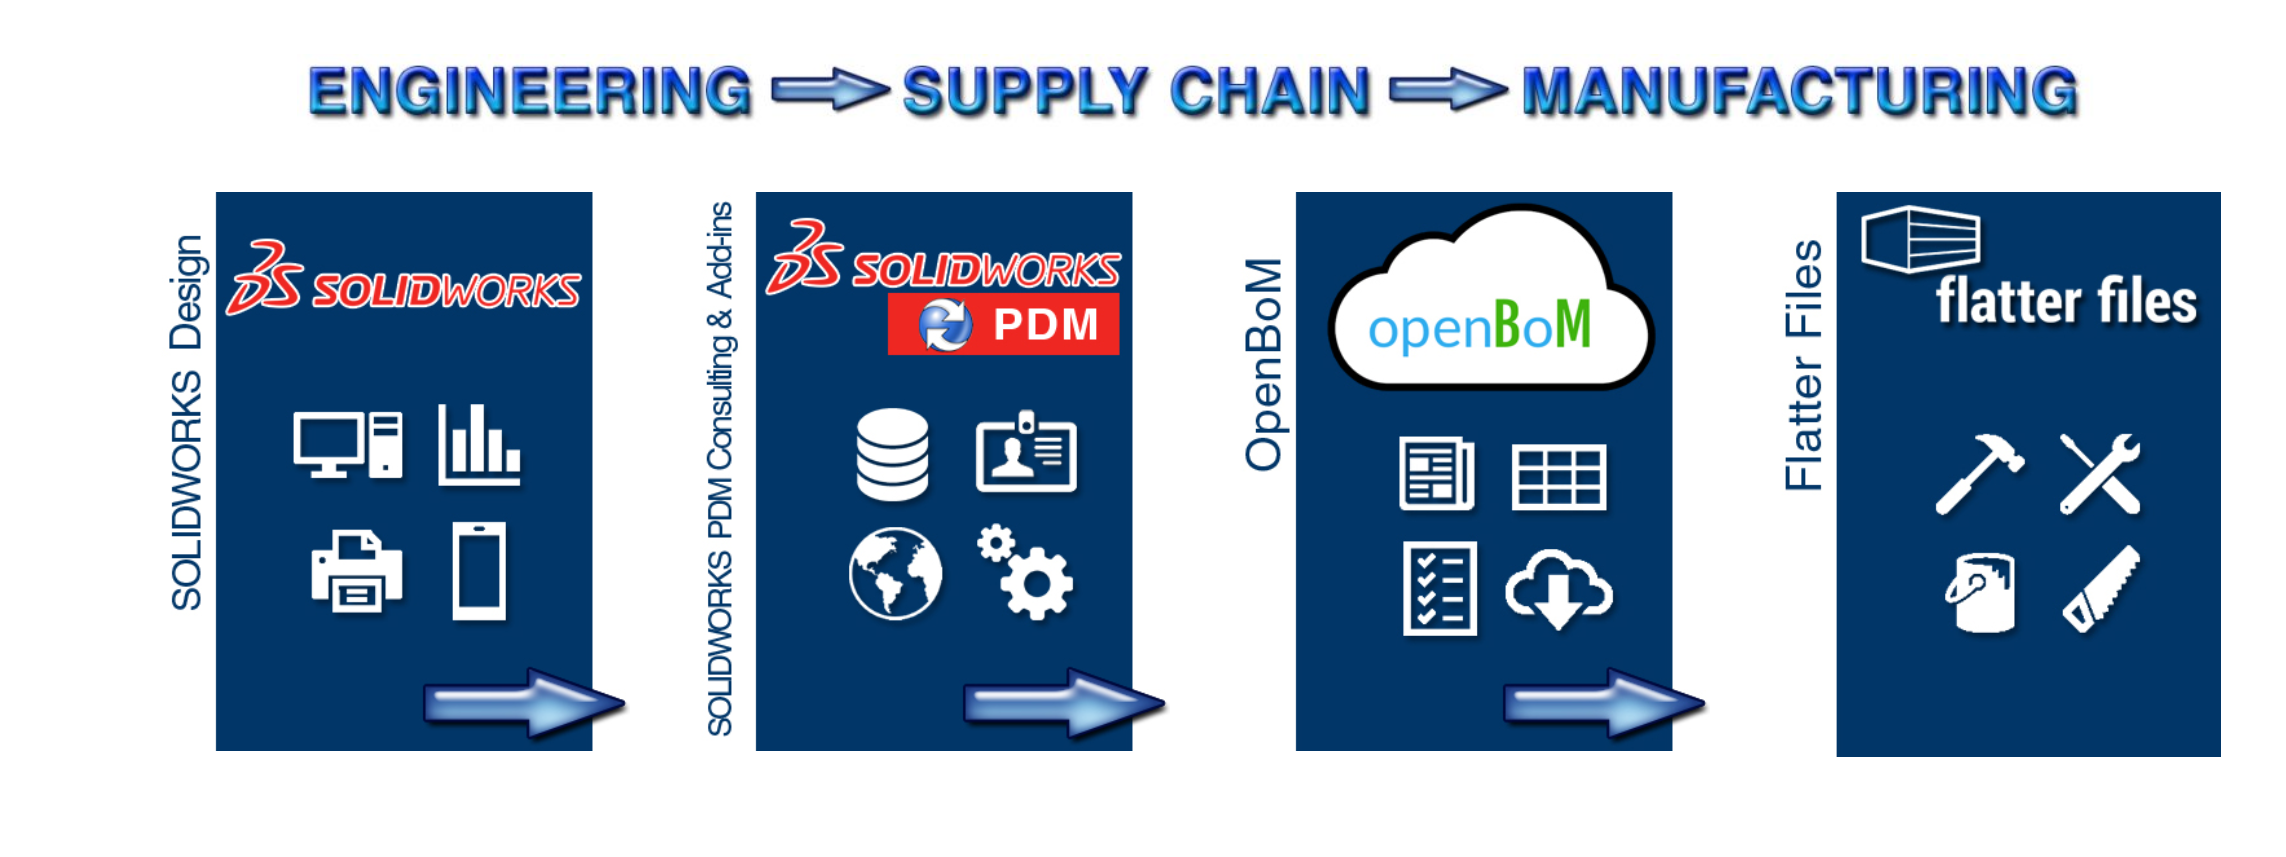 engineering-supply-chain-manufacturing